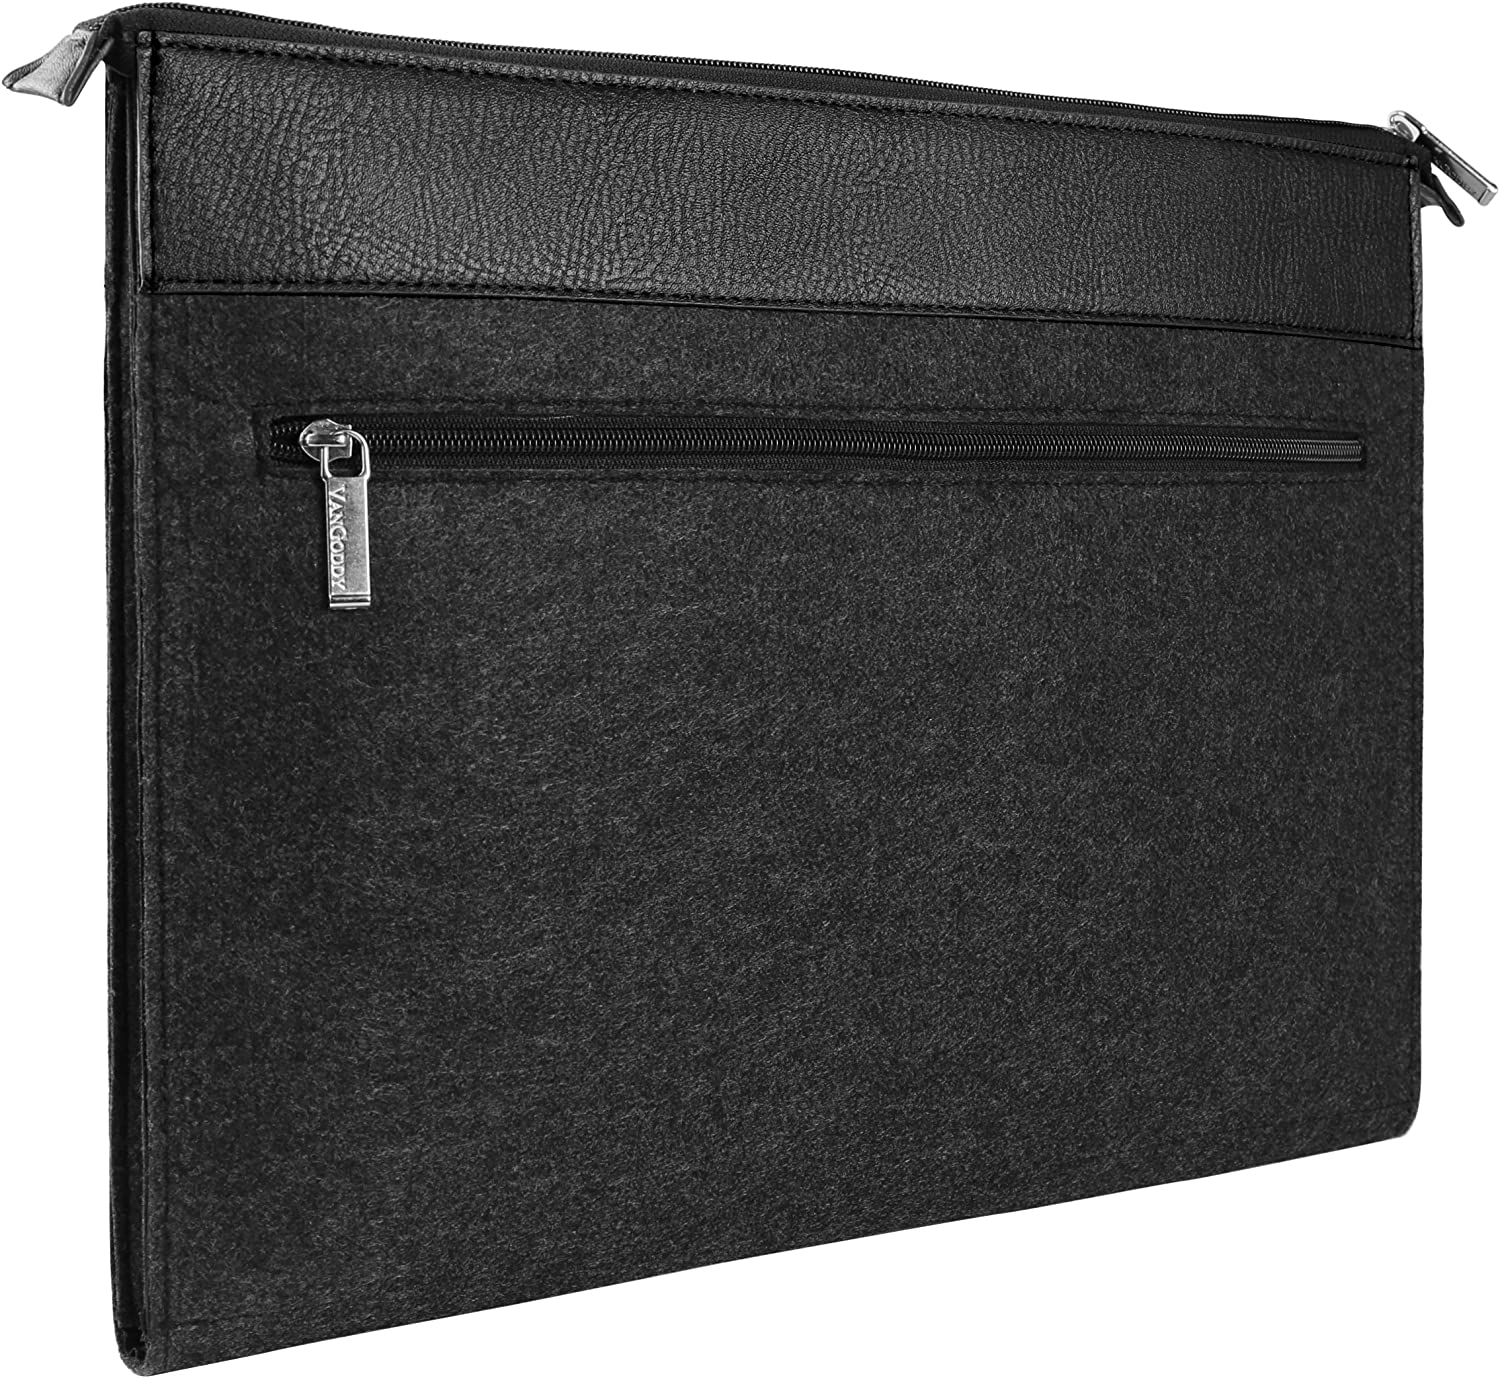 Vangoddy 17 Inch Exo Woolen Felt Compact Slim Carrying Sleeve Case Black Trim for HP Envy 15 Omen 15 Pavilion 15 Series 15.6 inch Laptop with Sync and Charge Cable